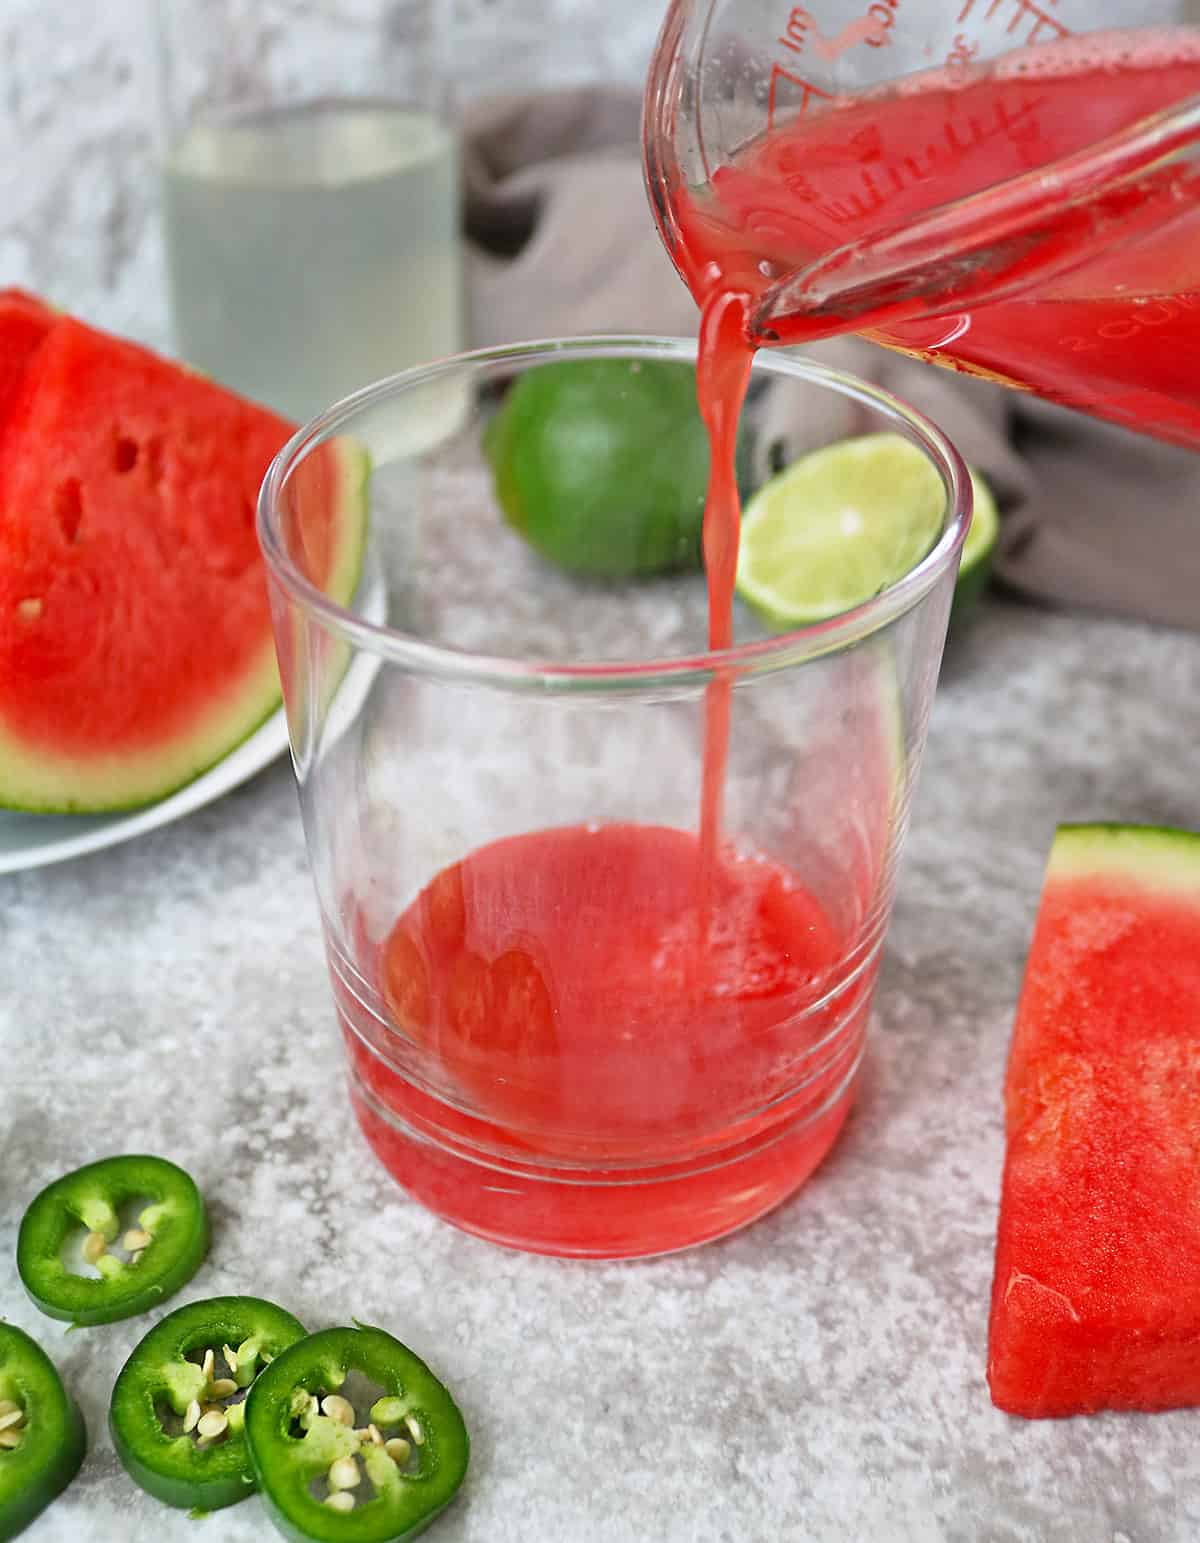 Pouring Delicious watermelon juice into a glass to make the paloma